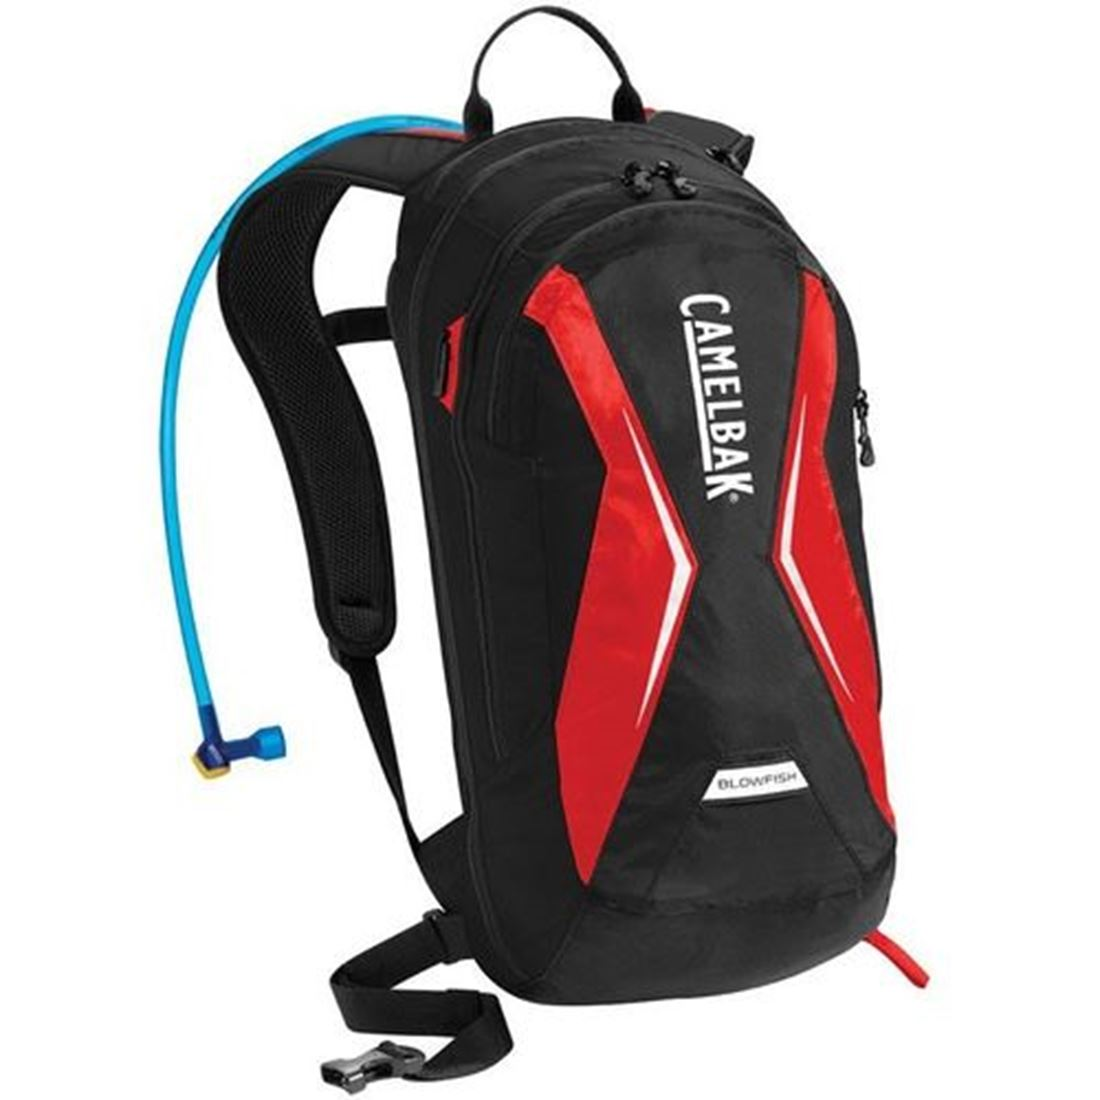 Picture of Camelbak Blowfish 2L Hydration Pack